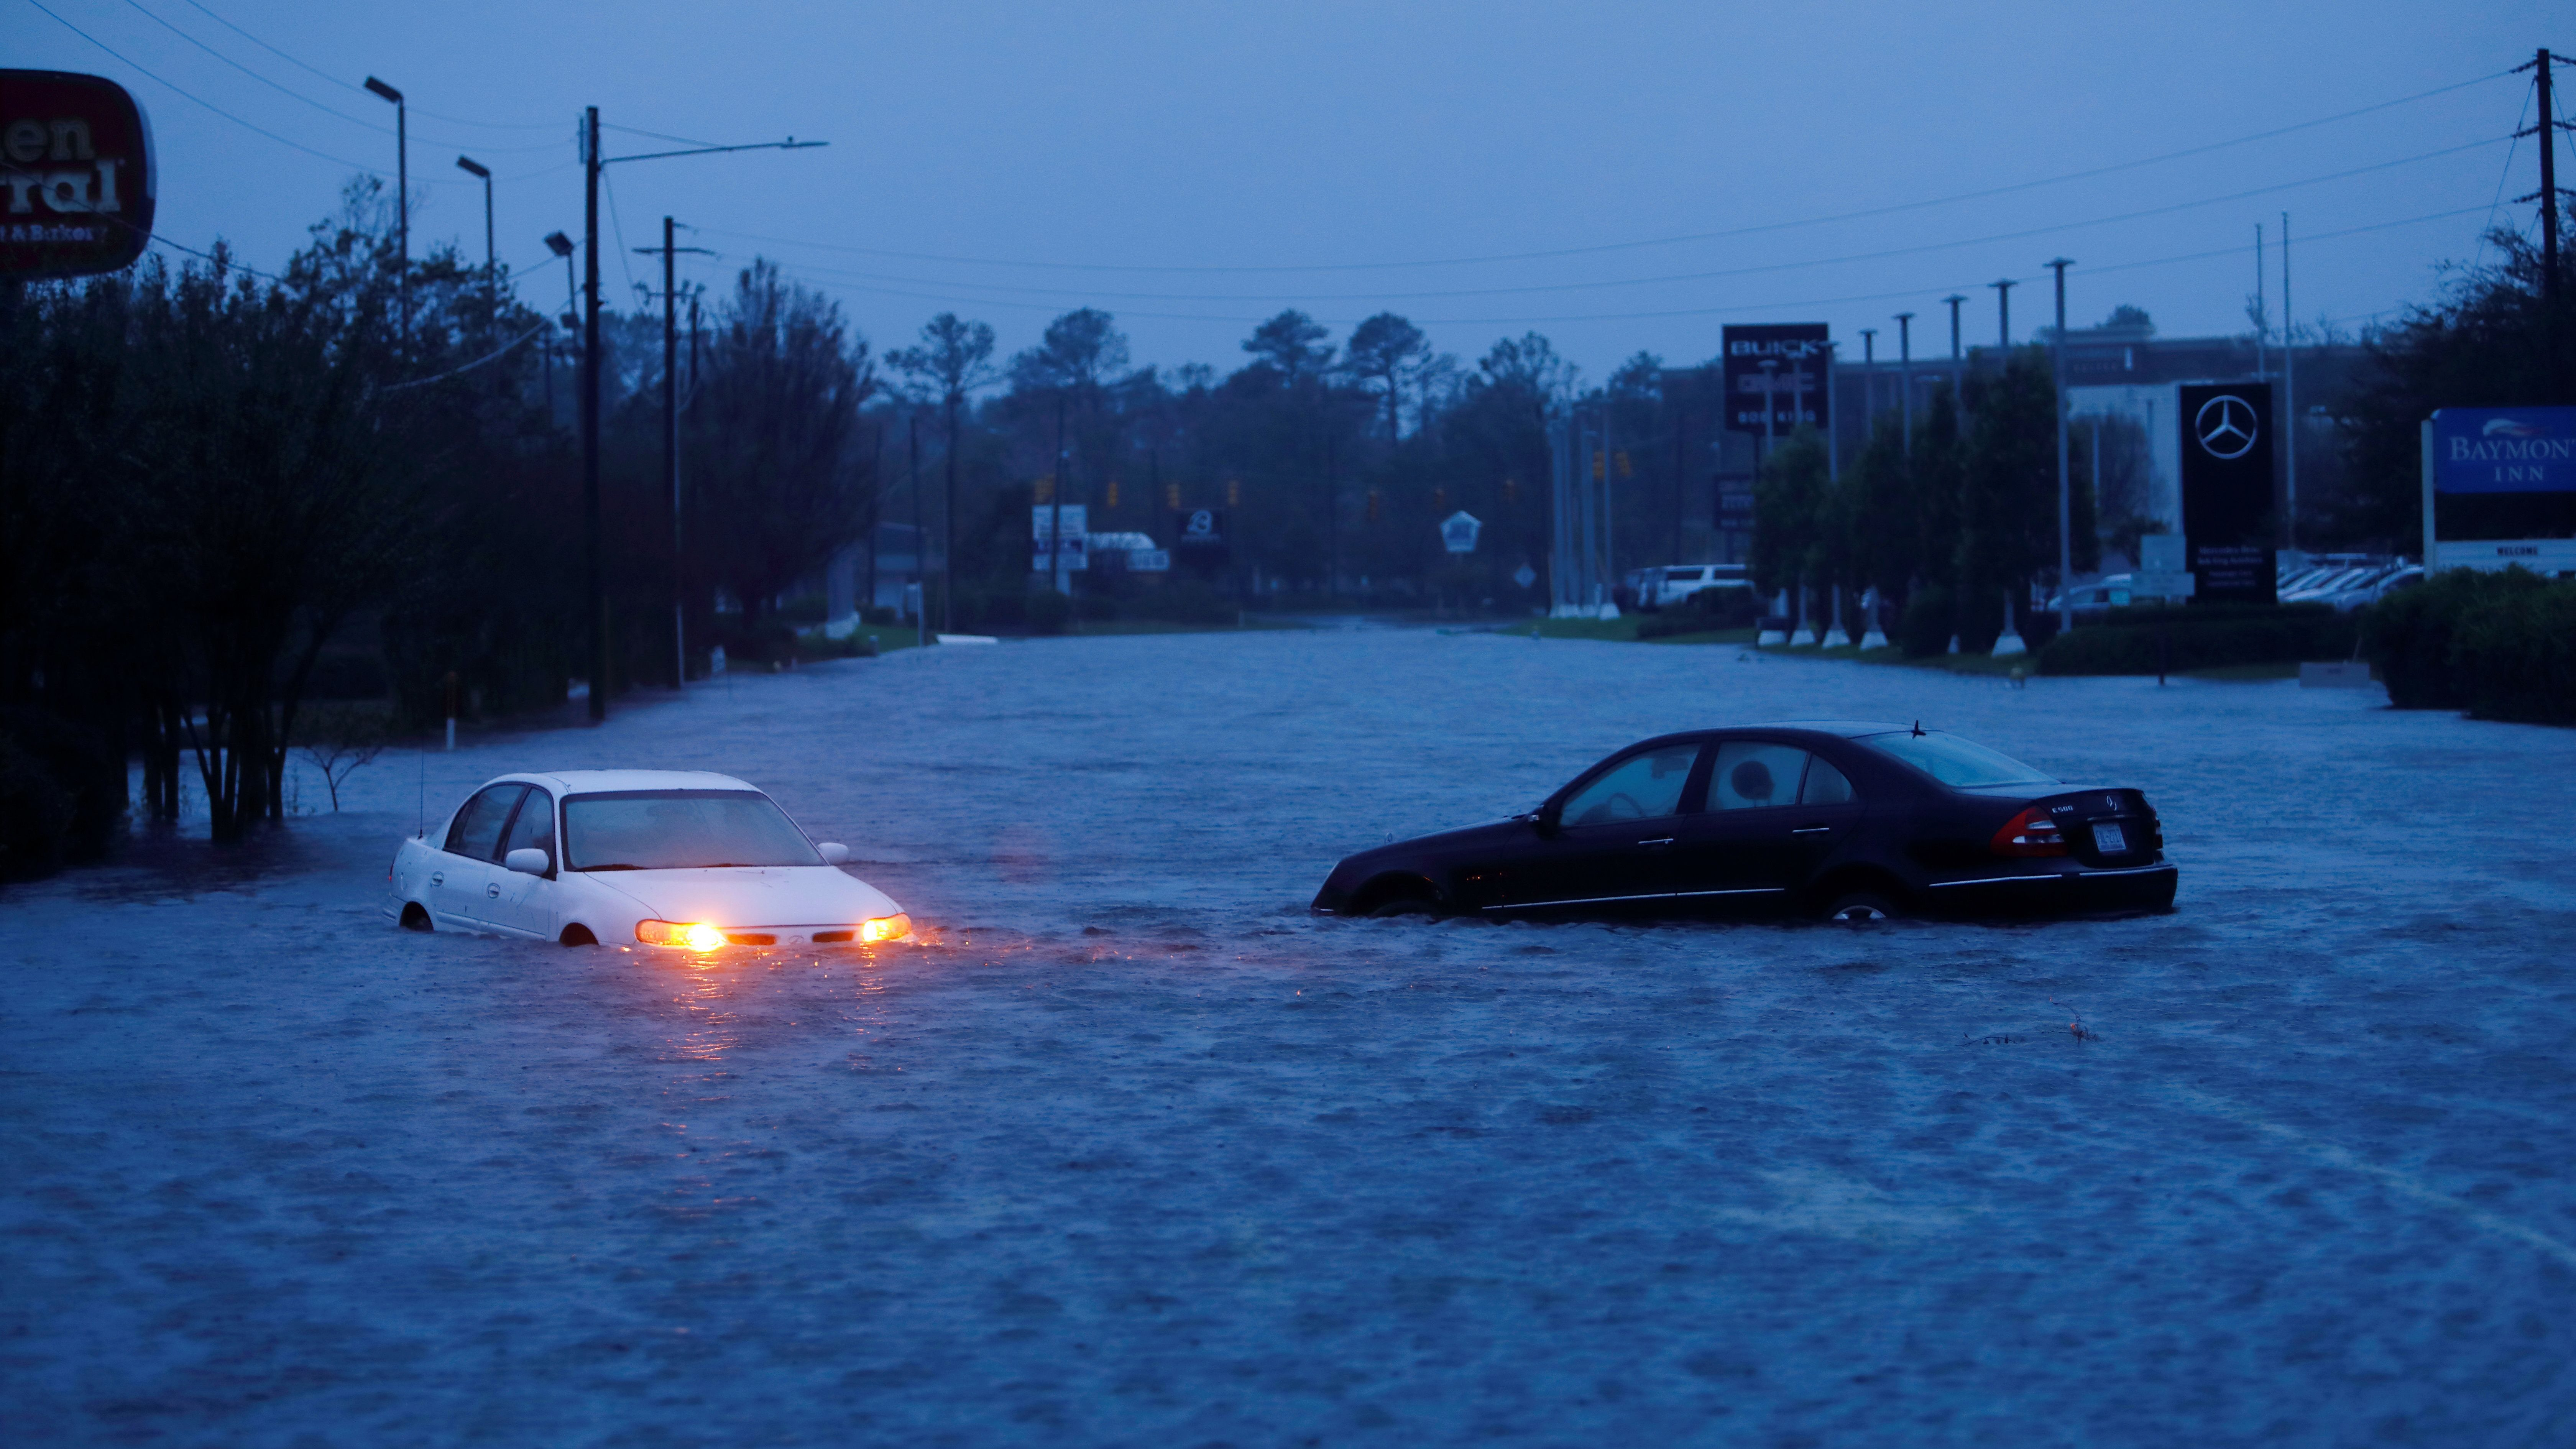 An abandoned car's hazard lights continue to flash as it sits submerged in a rising flood waters during pre-dawn hours after Hurricane Florence struck in Wilmington, North Carolina, U.S., September 15, 2018.